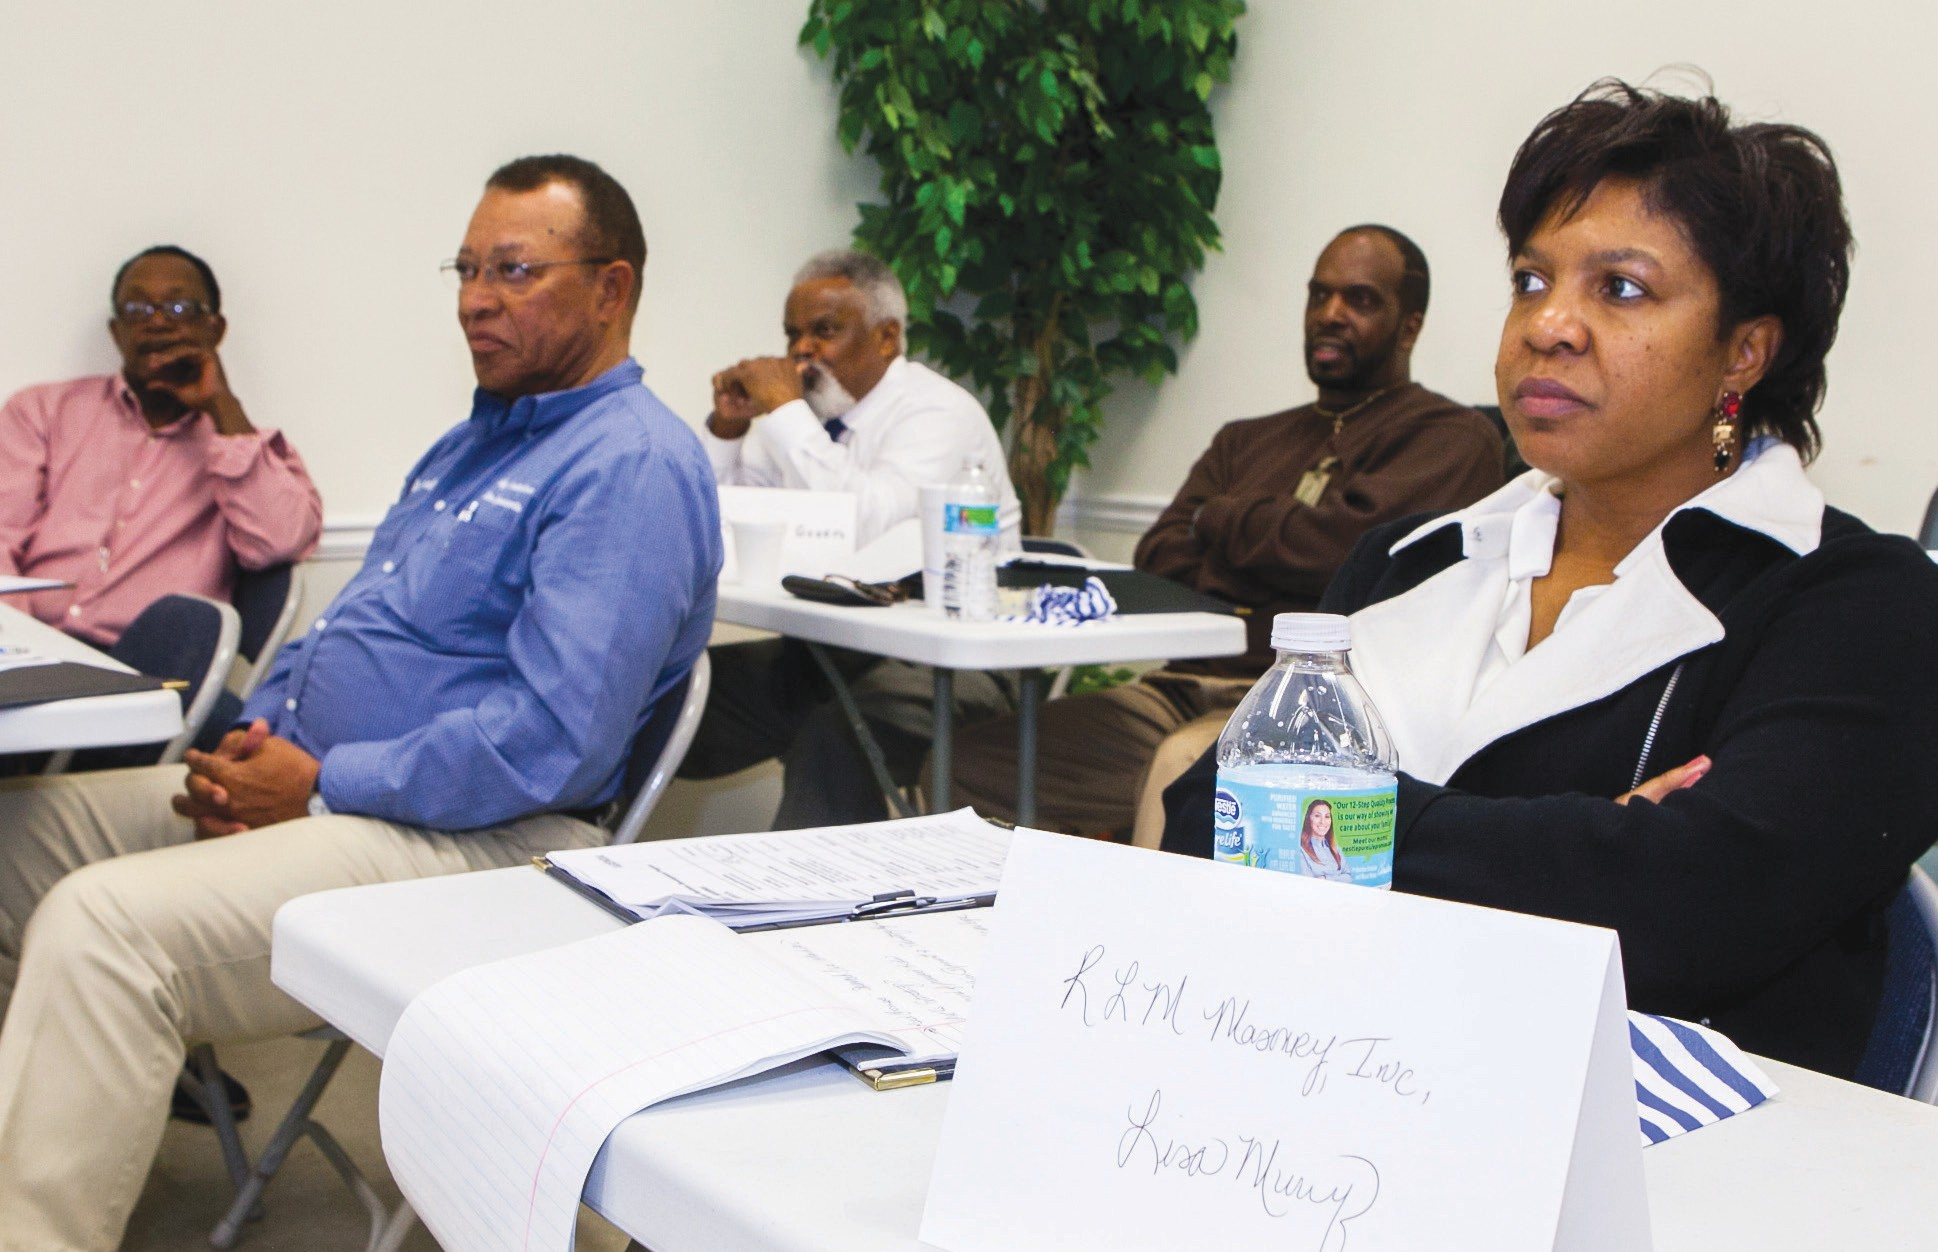 Participants in the 2015 Minority Contractor Business Development Program learn how to enhance business acumen and interpersonal and relationship-building skills.